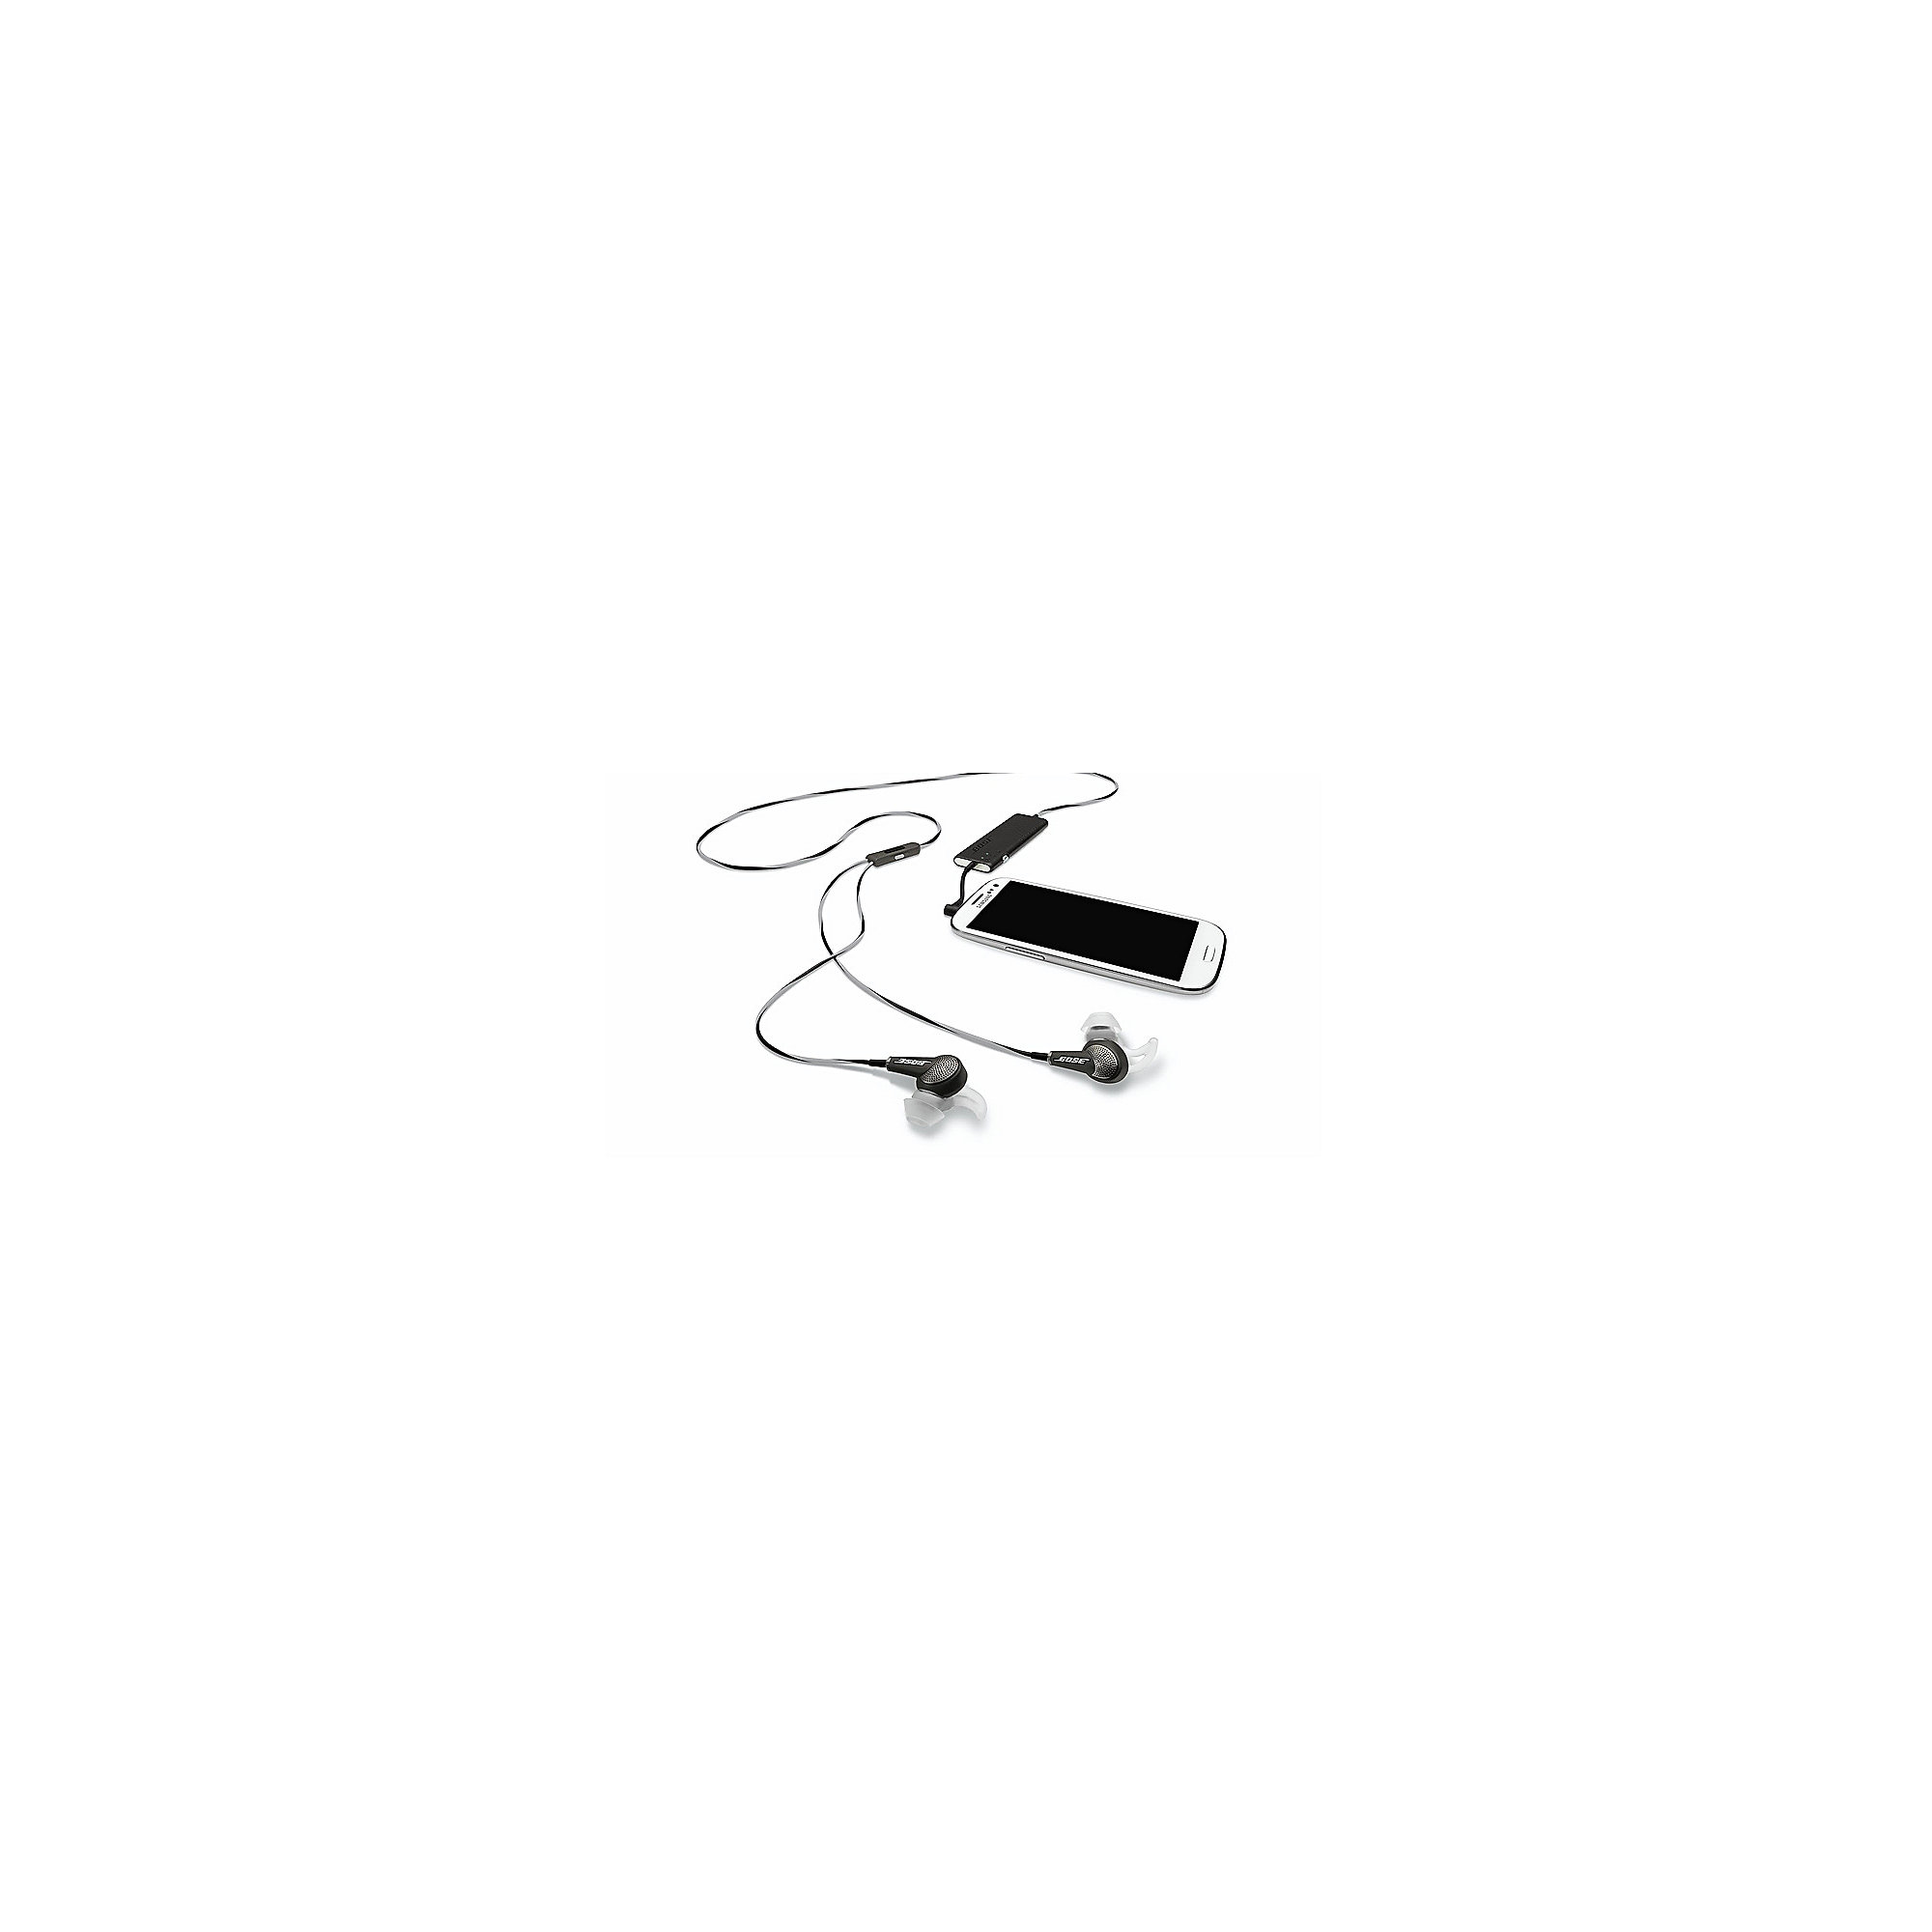 .Bose Quietcomfort 20i - Acoustic Noise Cancelling In-Ear Headphones für Apple